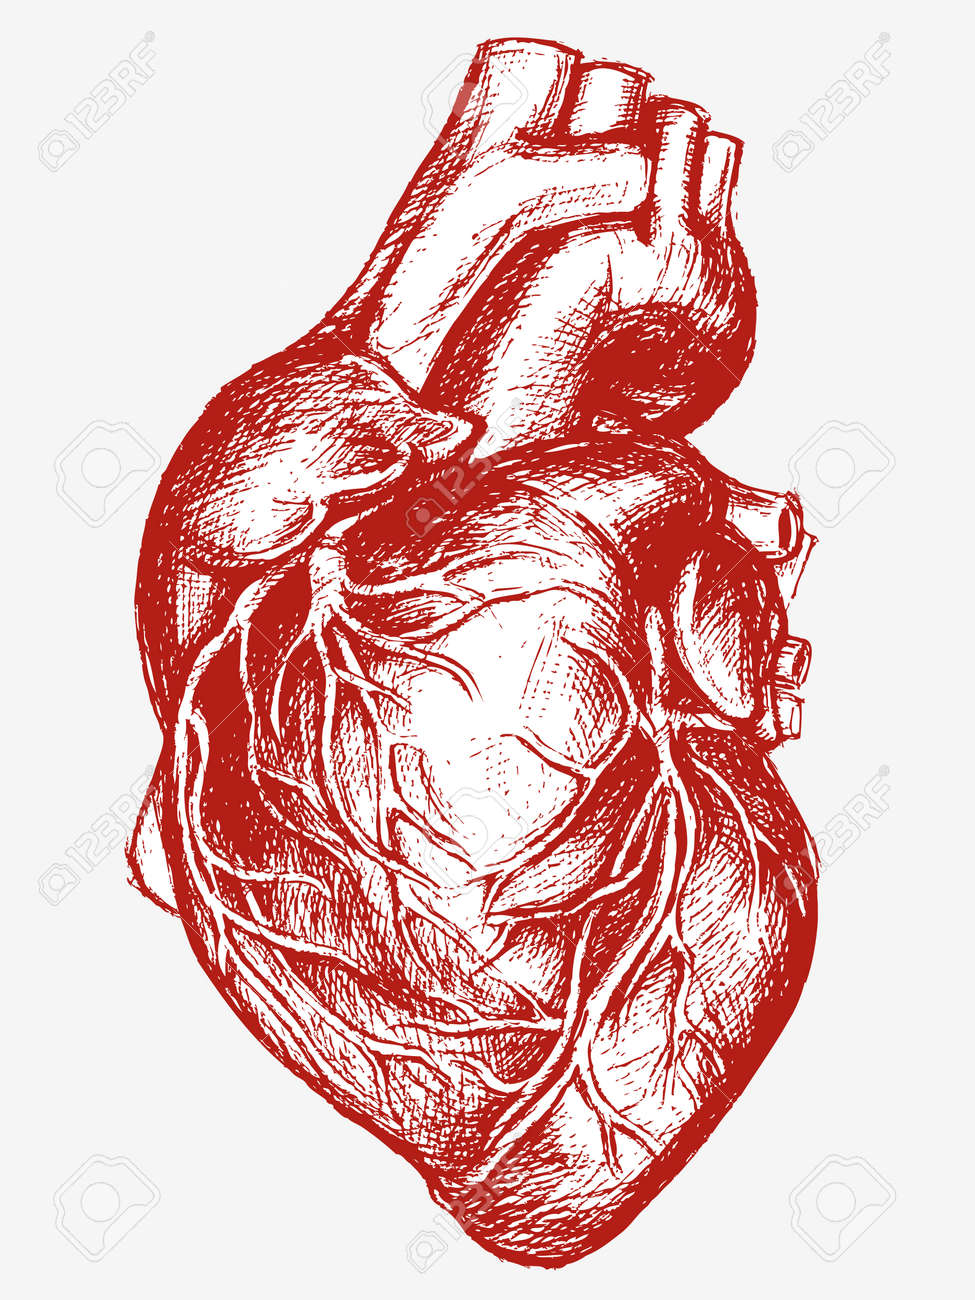 Human Heart Drawing Line Work Royalty Free Cliparts, Vectors, And ...